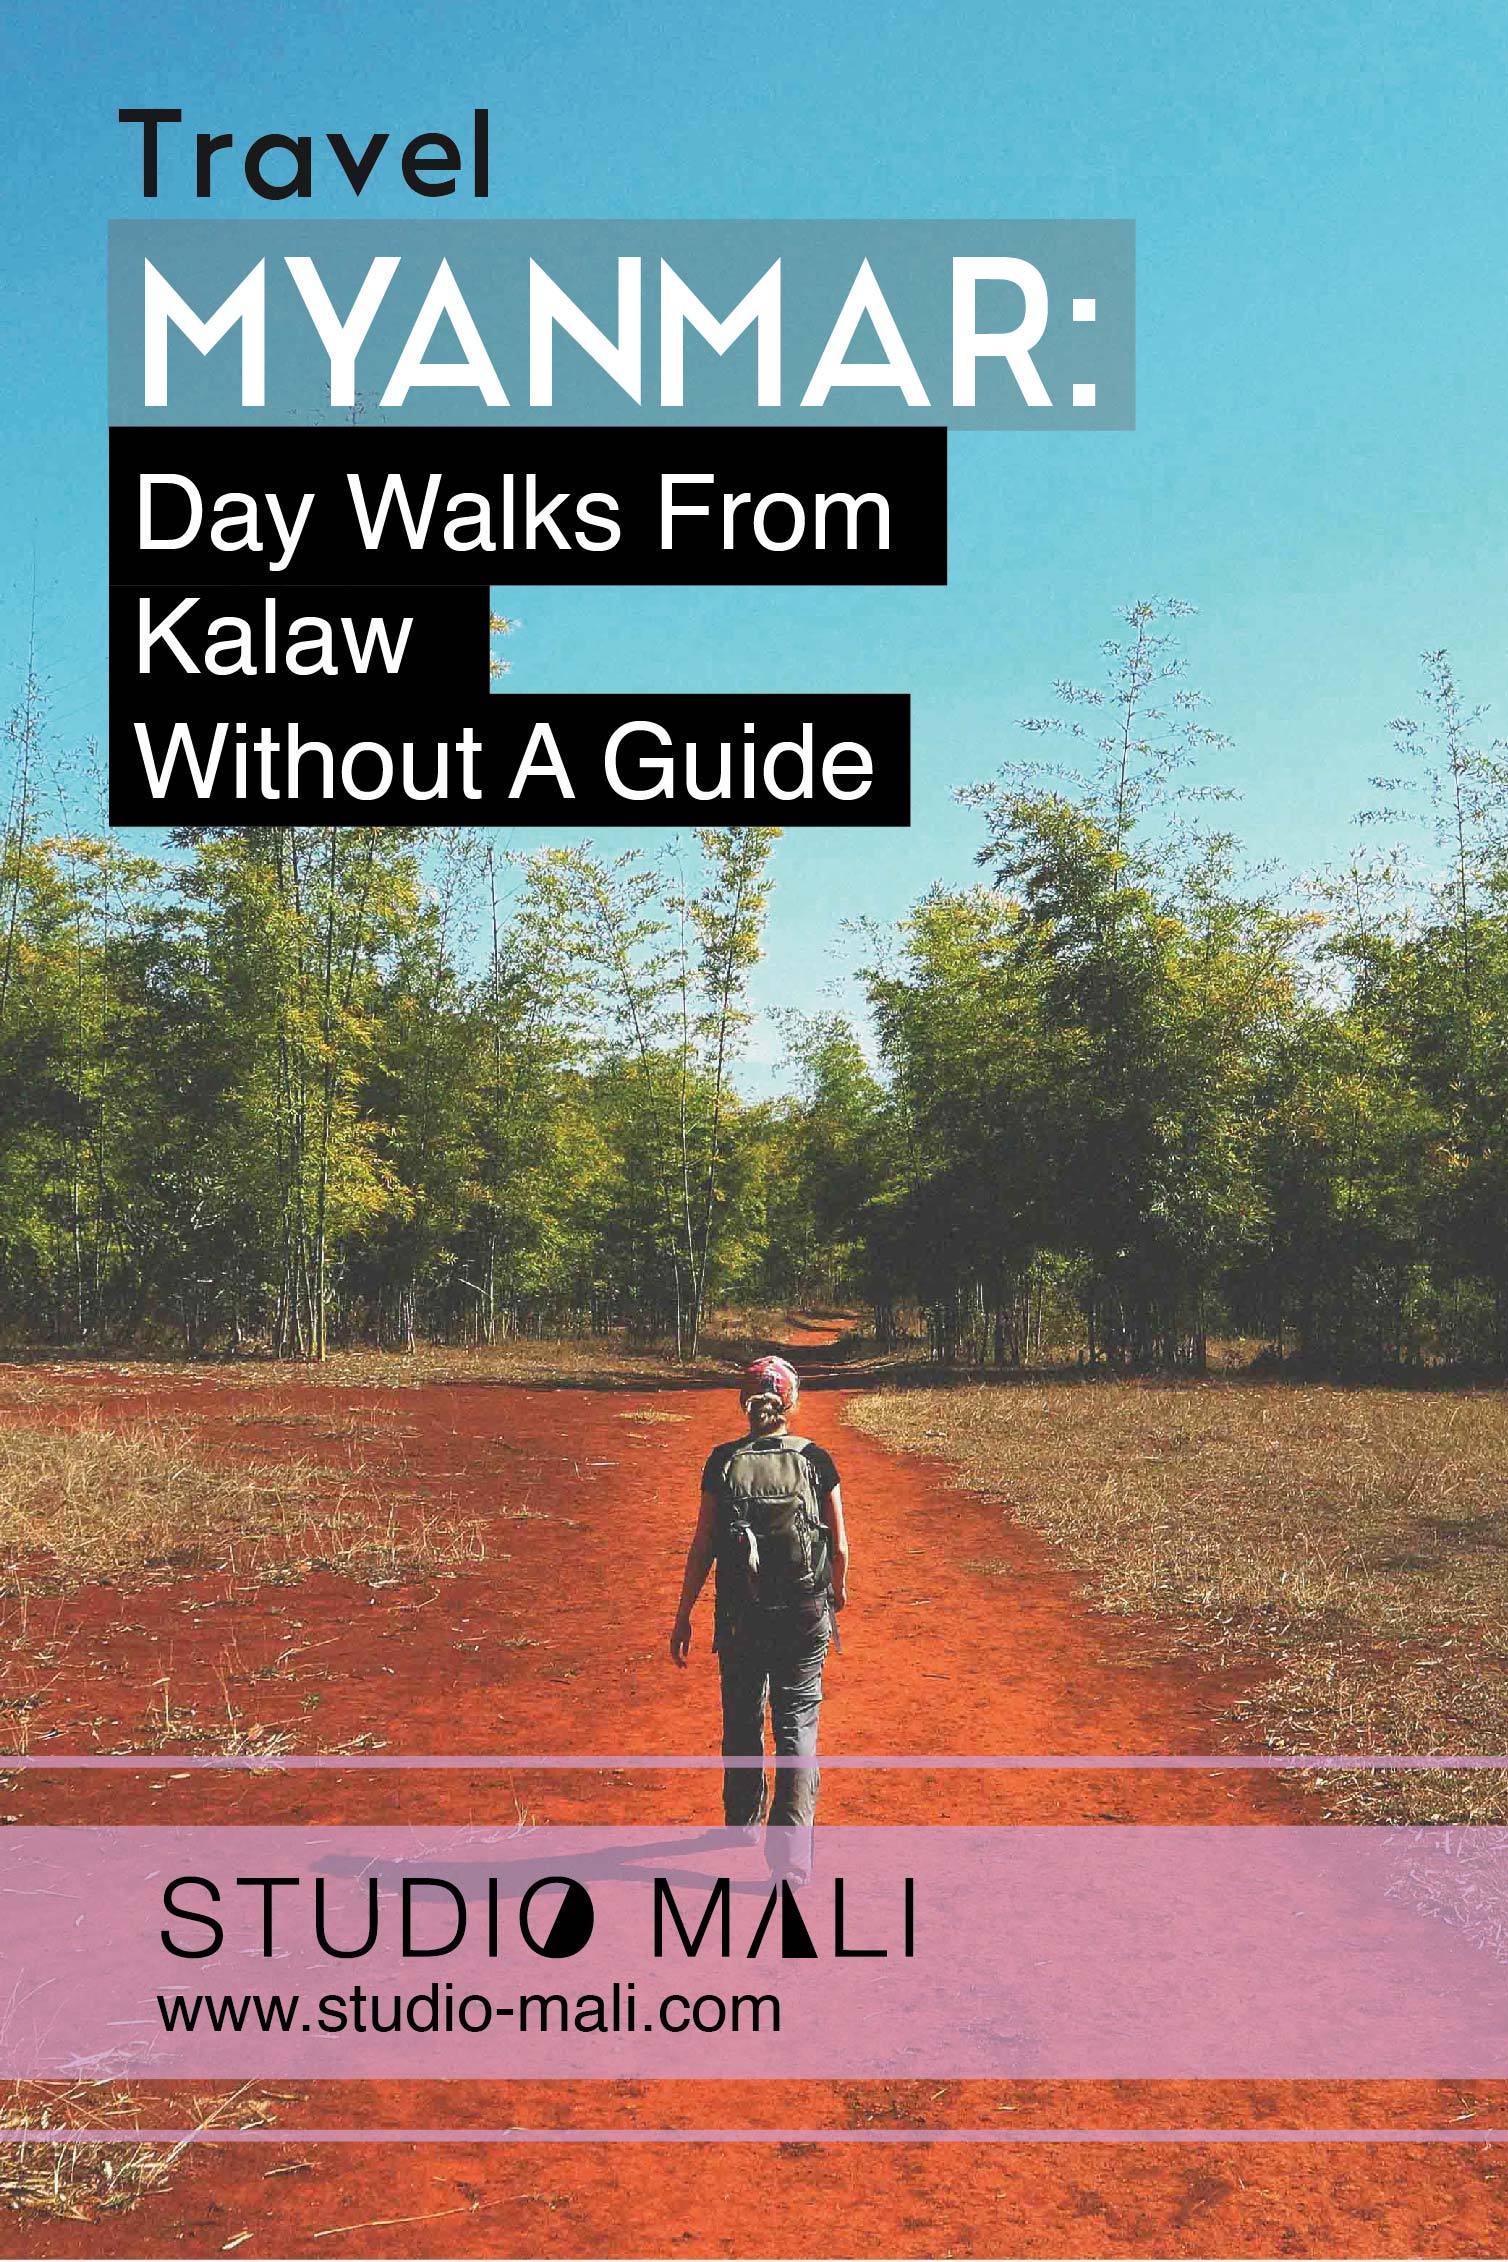 Myanmar- Day Walks From Kalaw Without A Guide, By Studio Mali.jpg